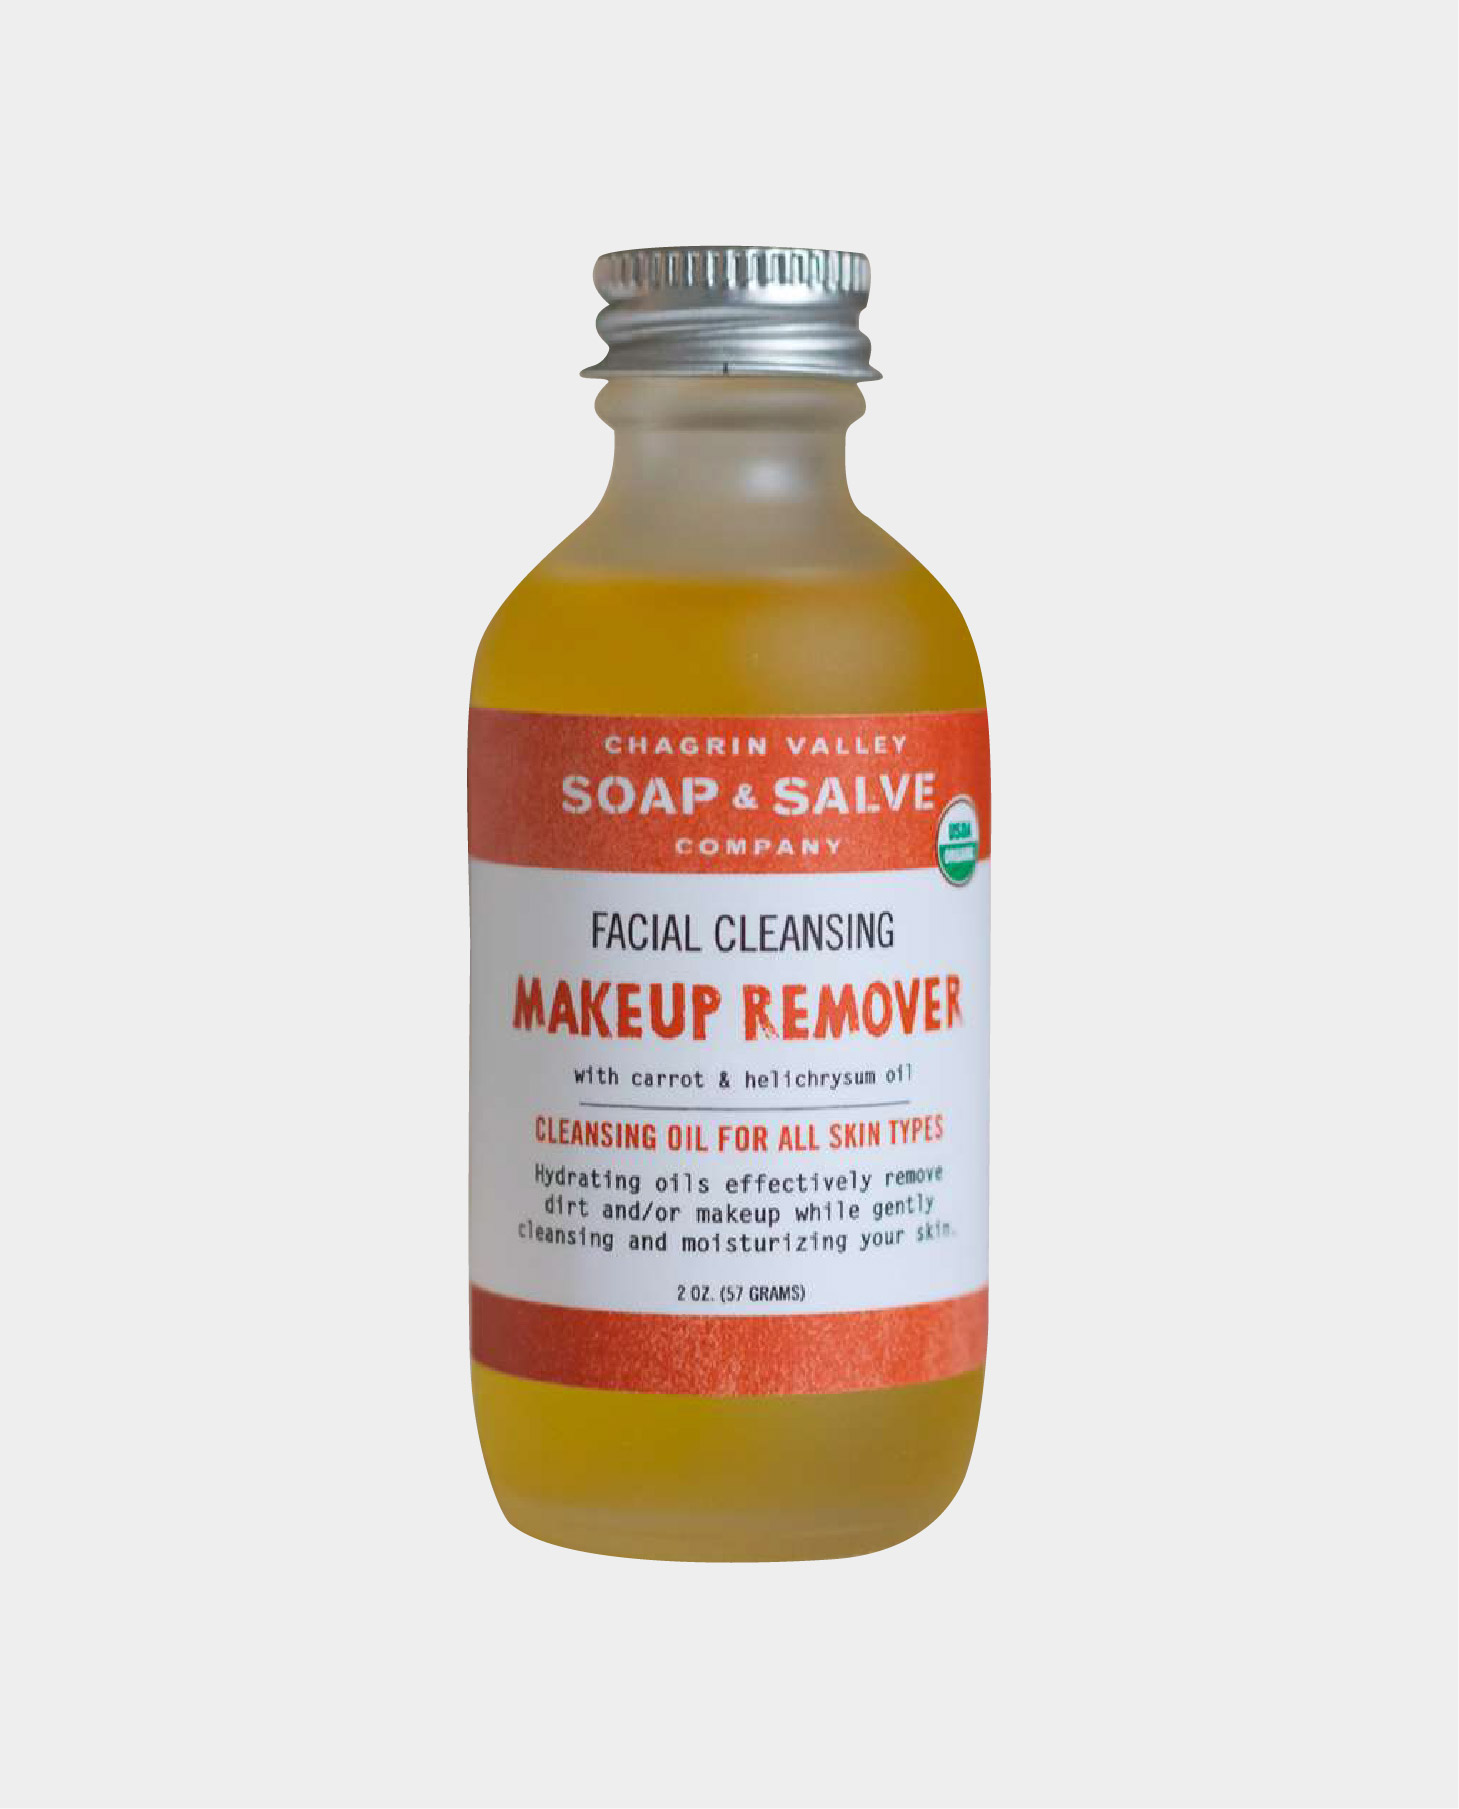 Facial Cleansing Makeup Remover